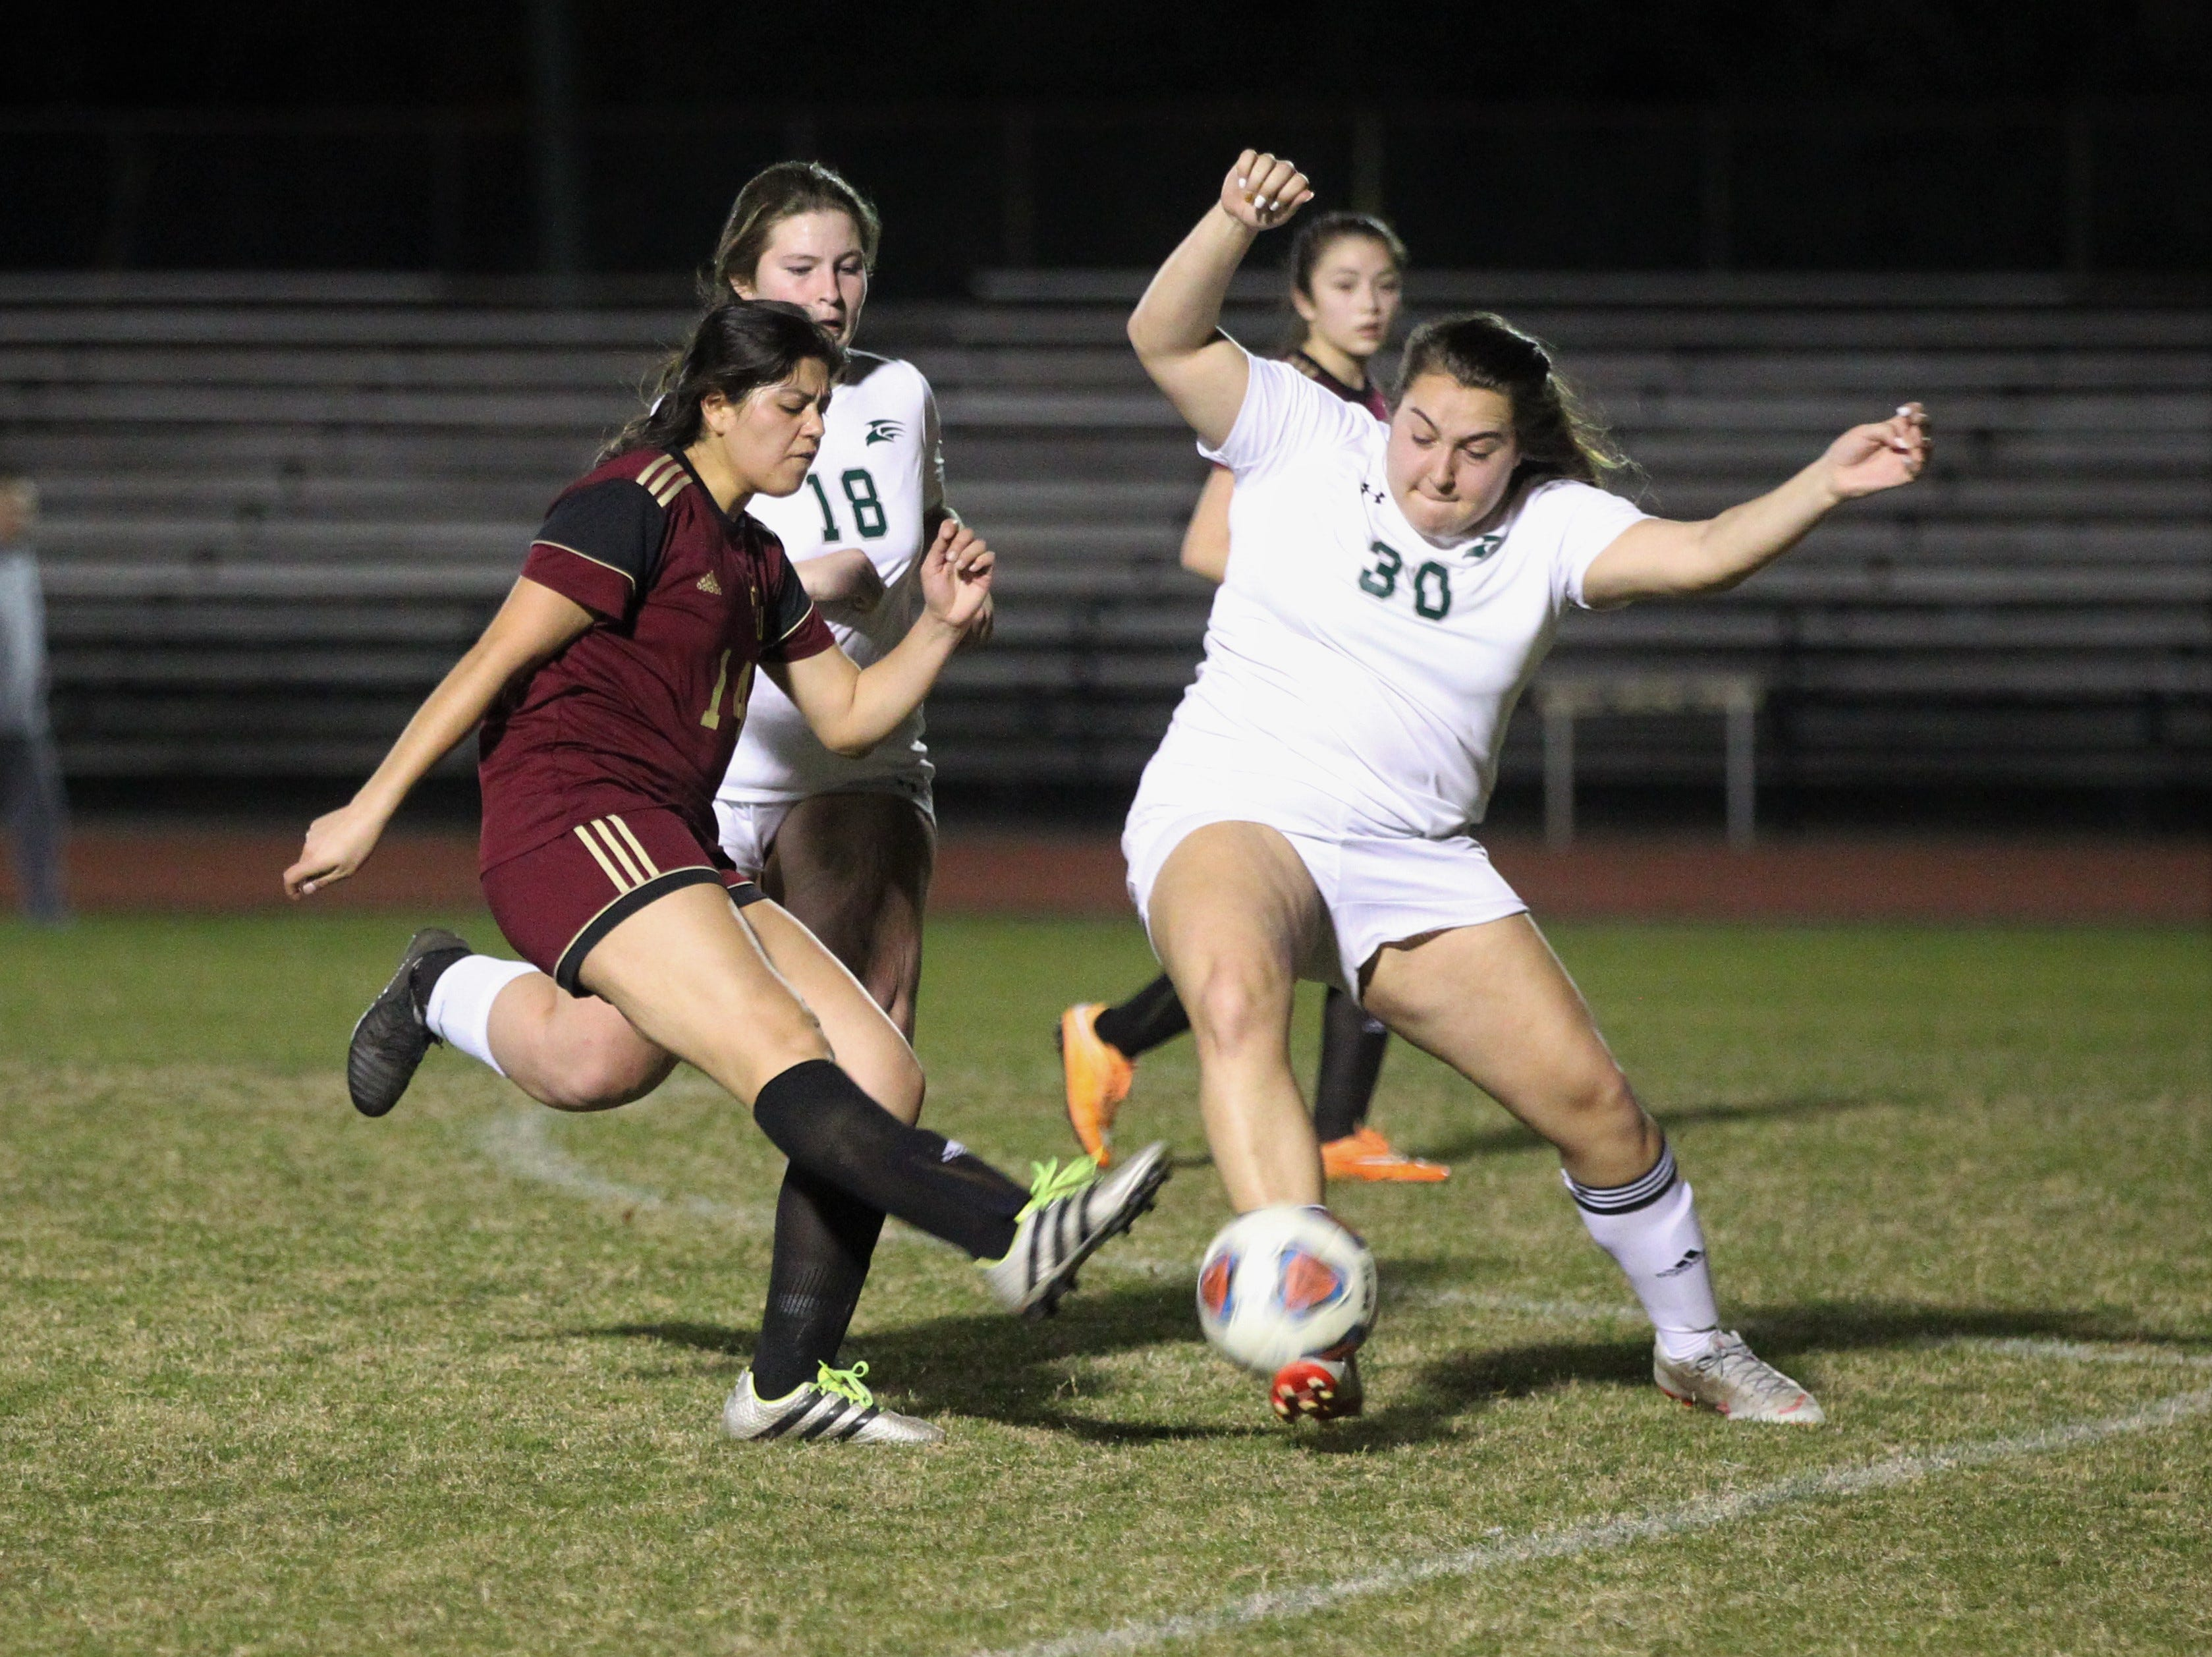 Florida High's Rubi Castro takes a shot that is disrupted as South Walton's girls soccer team edged the Seminoles 5-4 in a penalty-kick shootout during a Region 1-2A semifinal on Feb. 8, 2019.